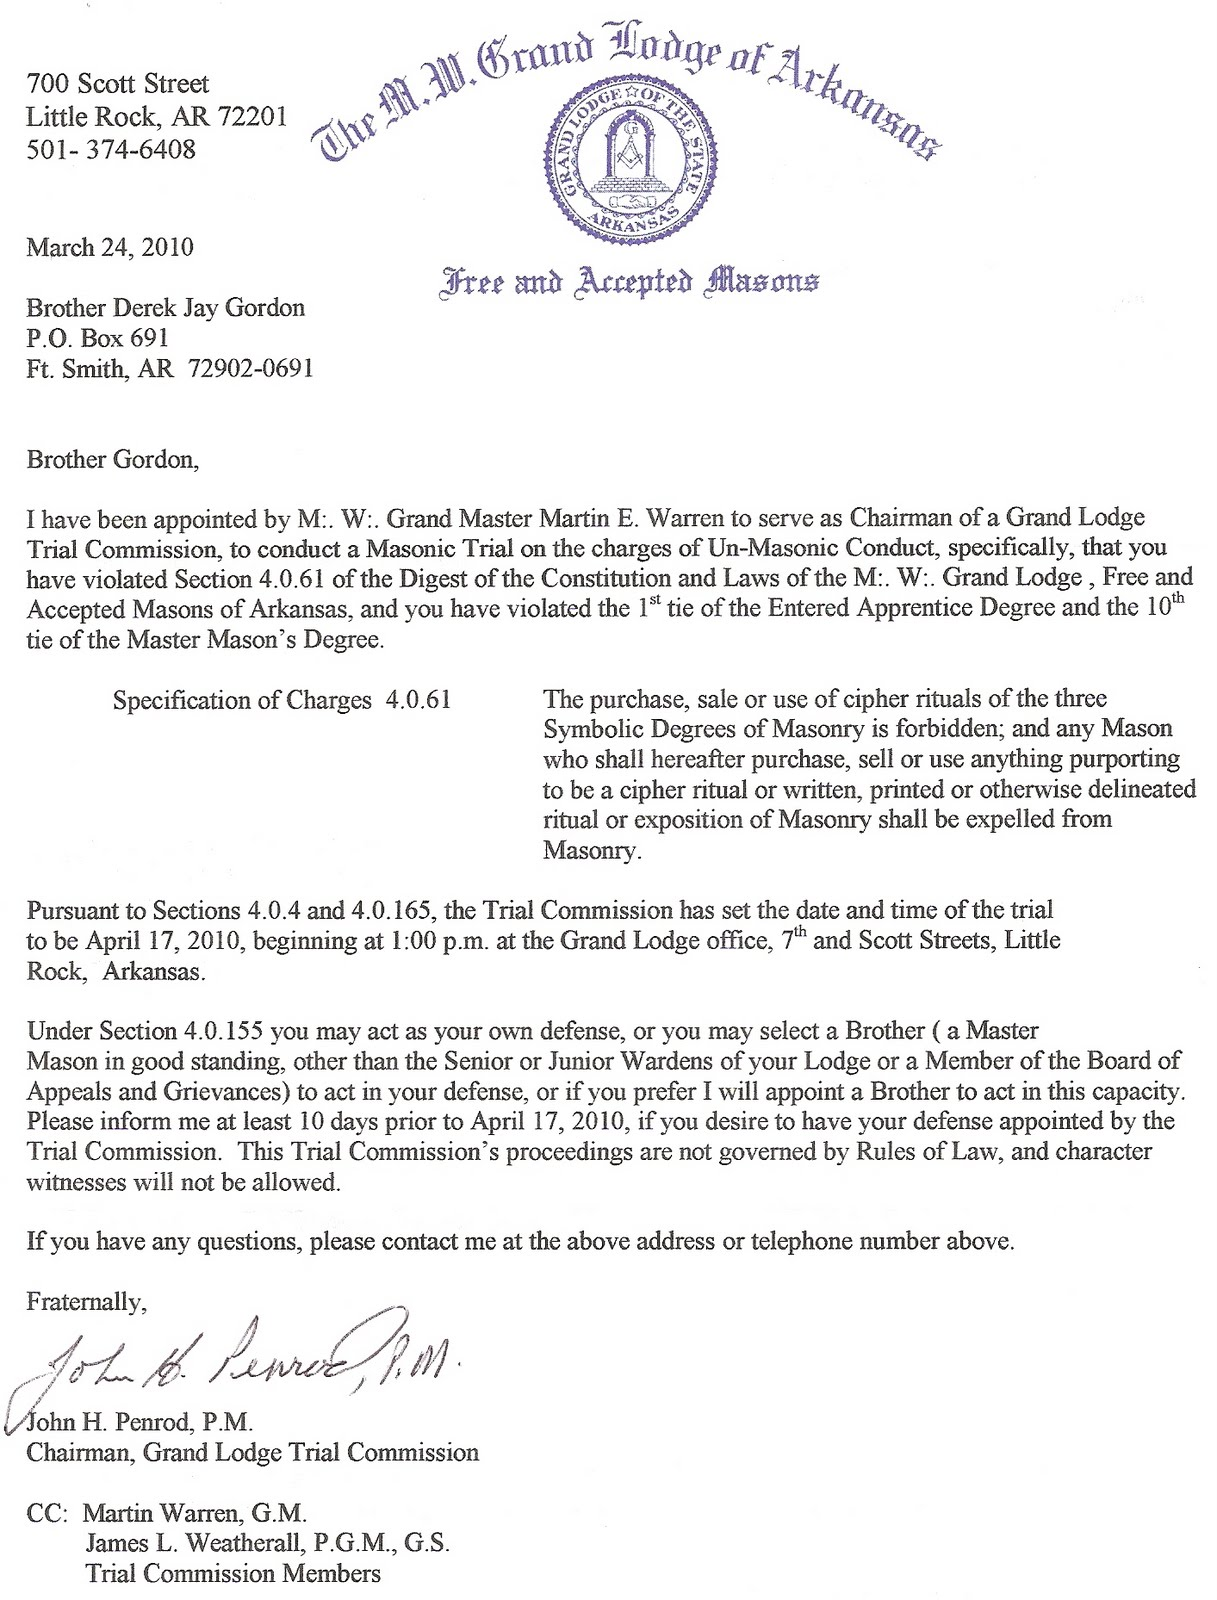 The burning taper gl of ars letter to bro derek gordon gl of ars letter to bro derek gordon thecheapjerseys Gallery